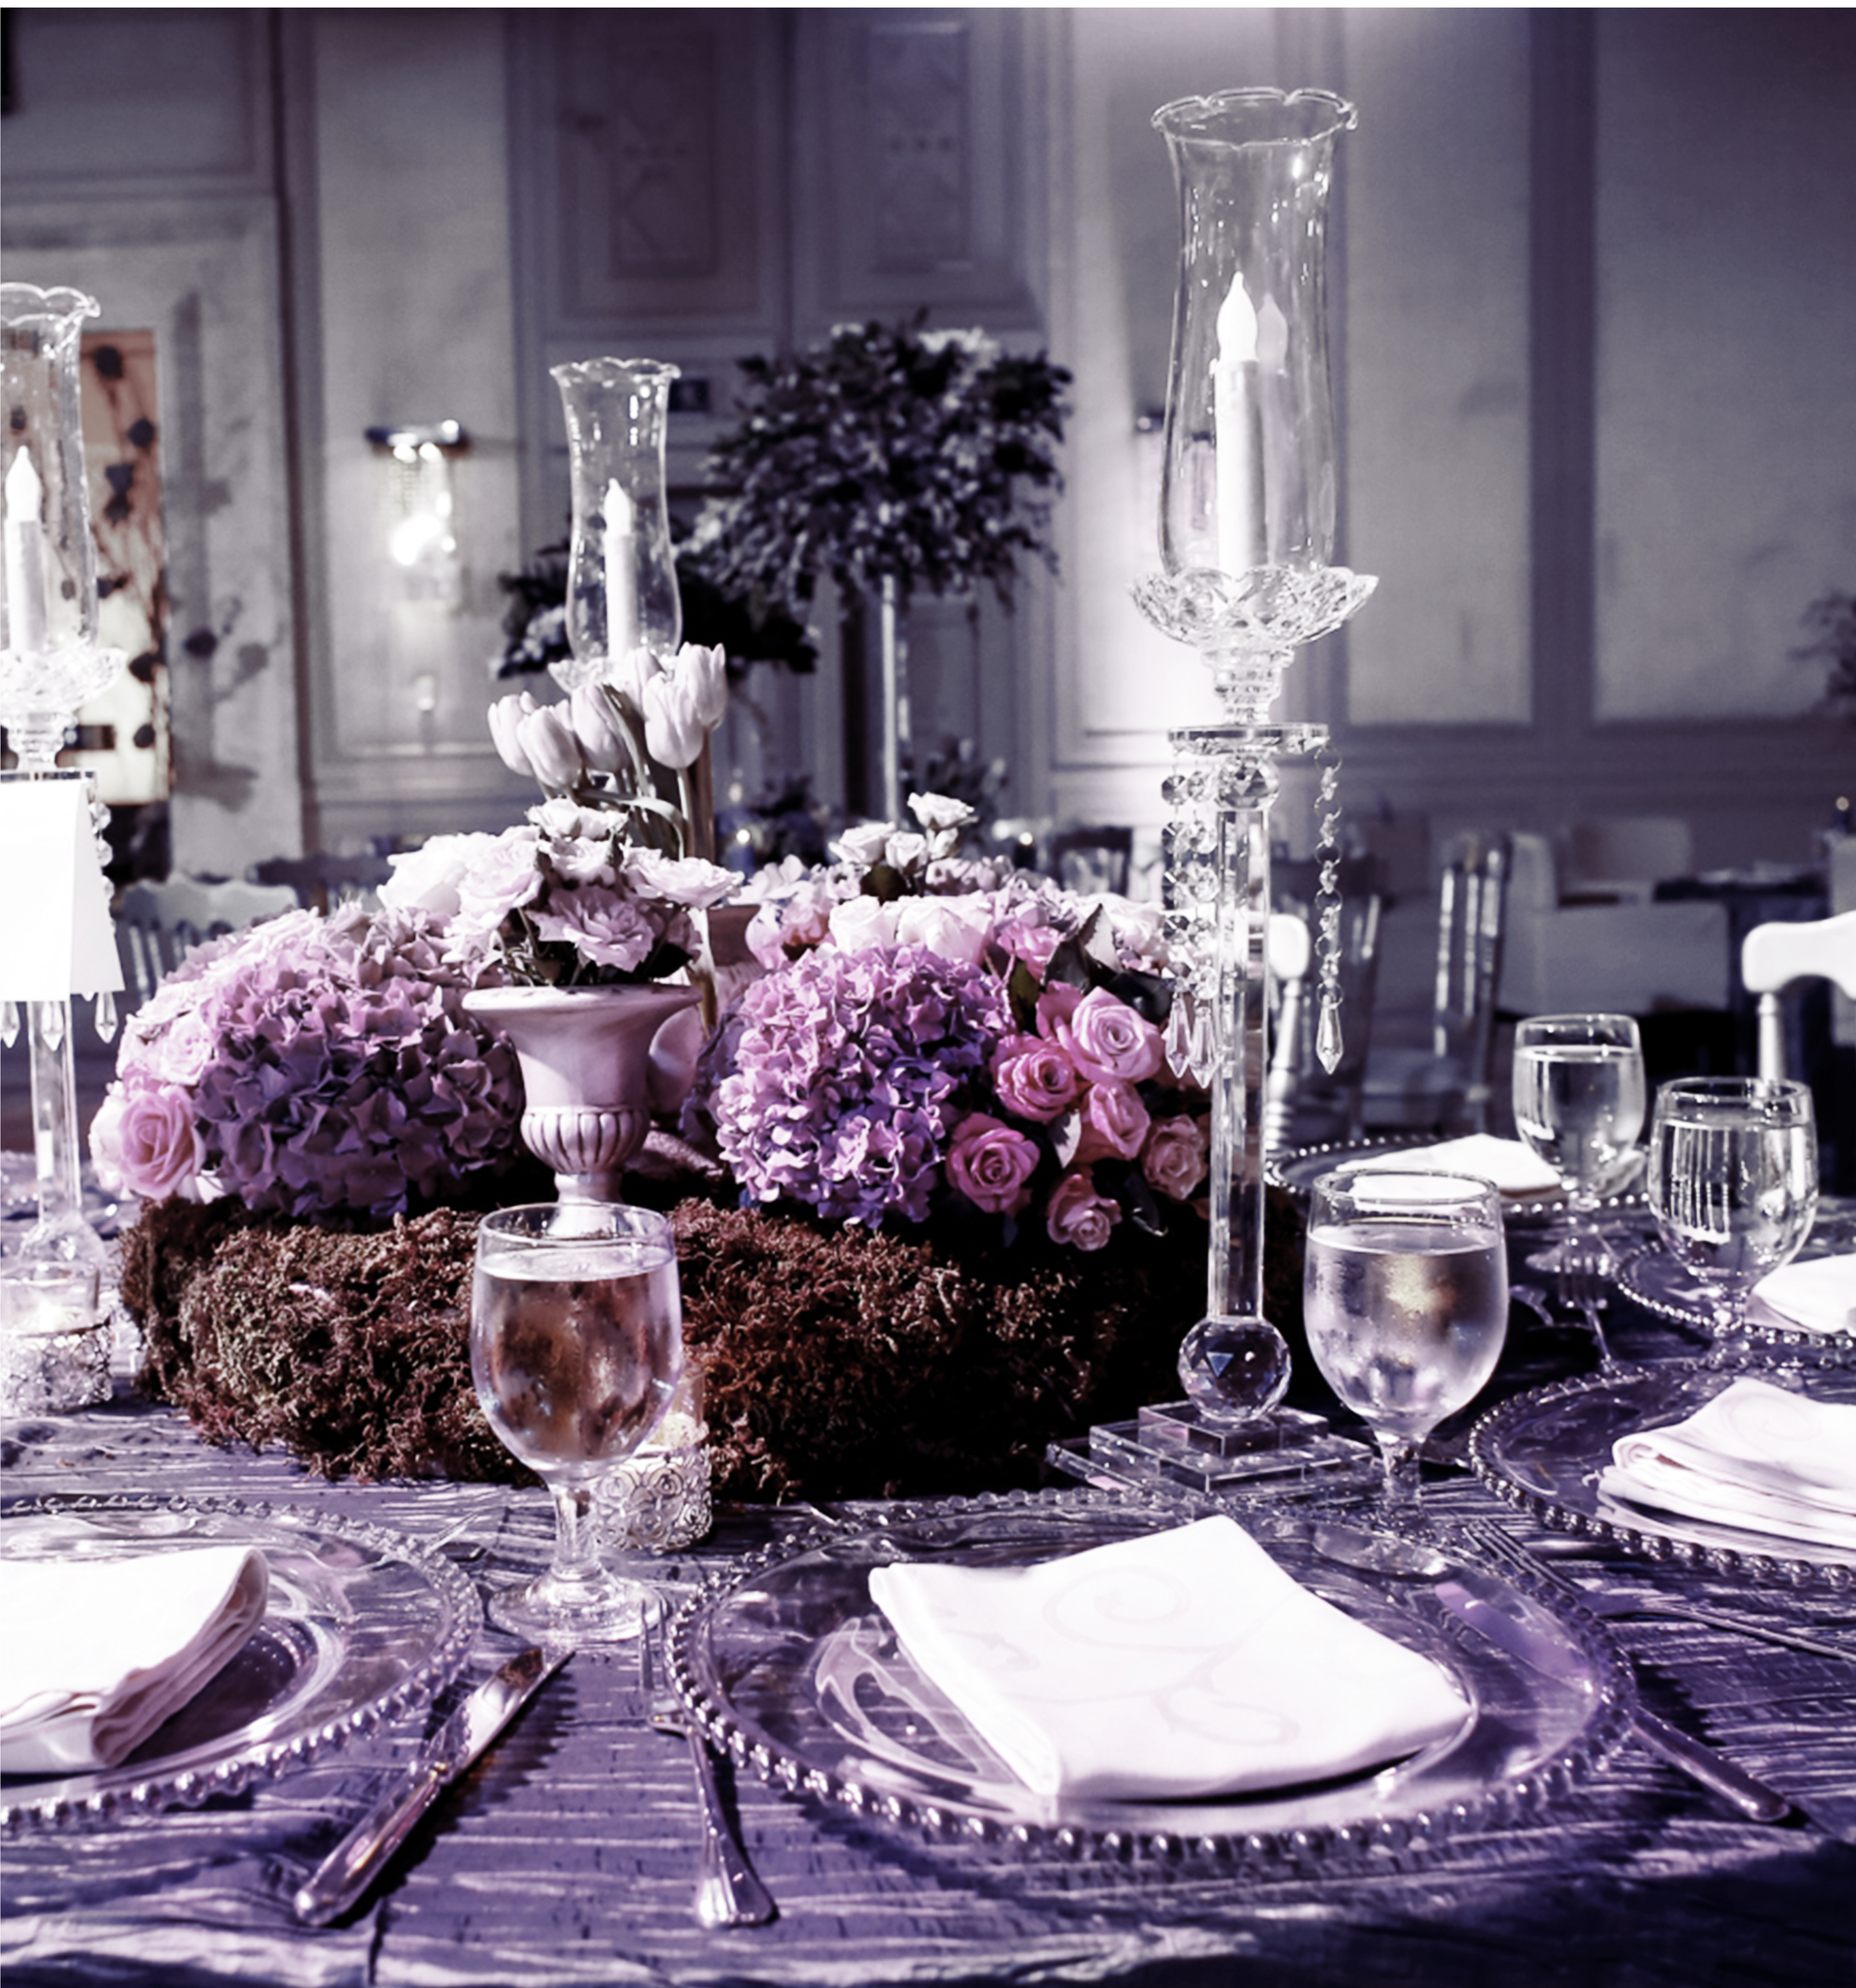 Event planner Tips: What to Serve at a Wedding Party?